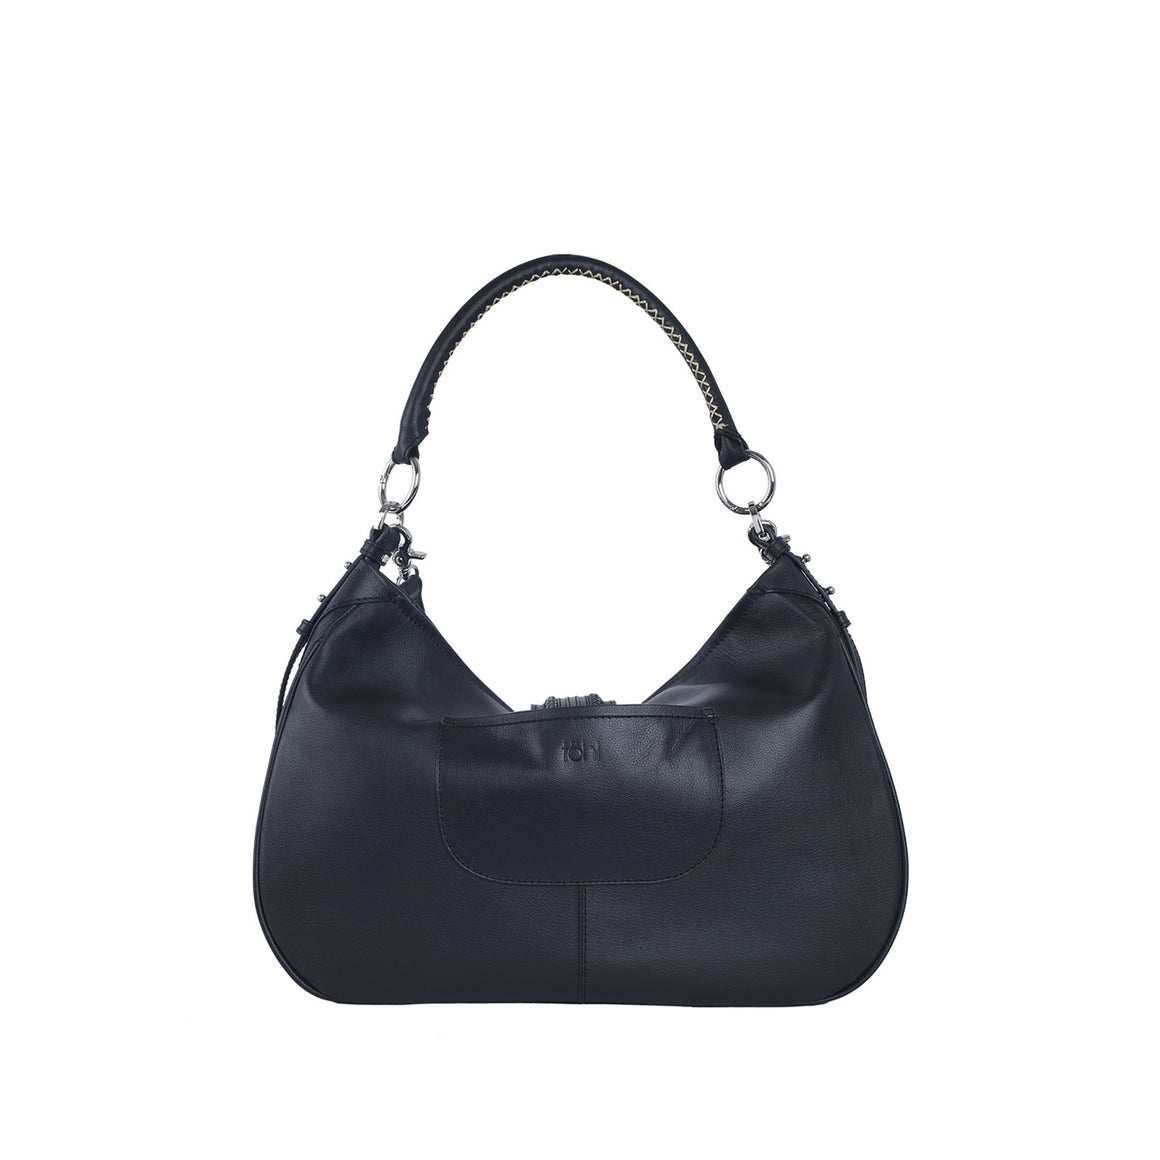 SB 0003 - TOHL EDIE WOMEN'S SHOULDER BAG -  CHARCOAL BLACK